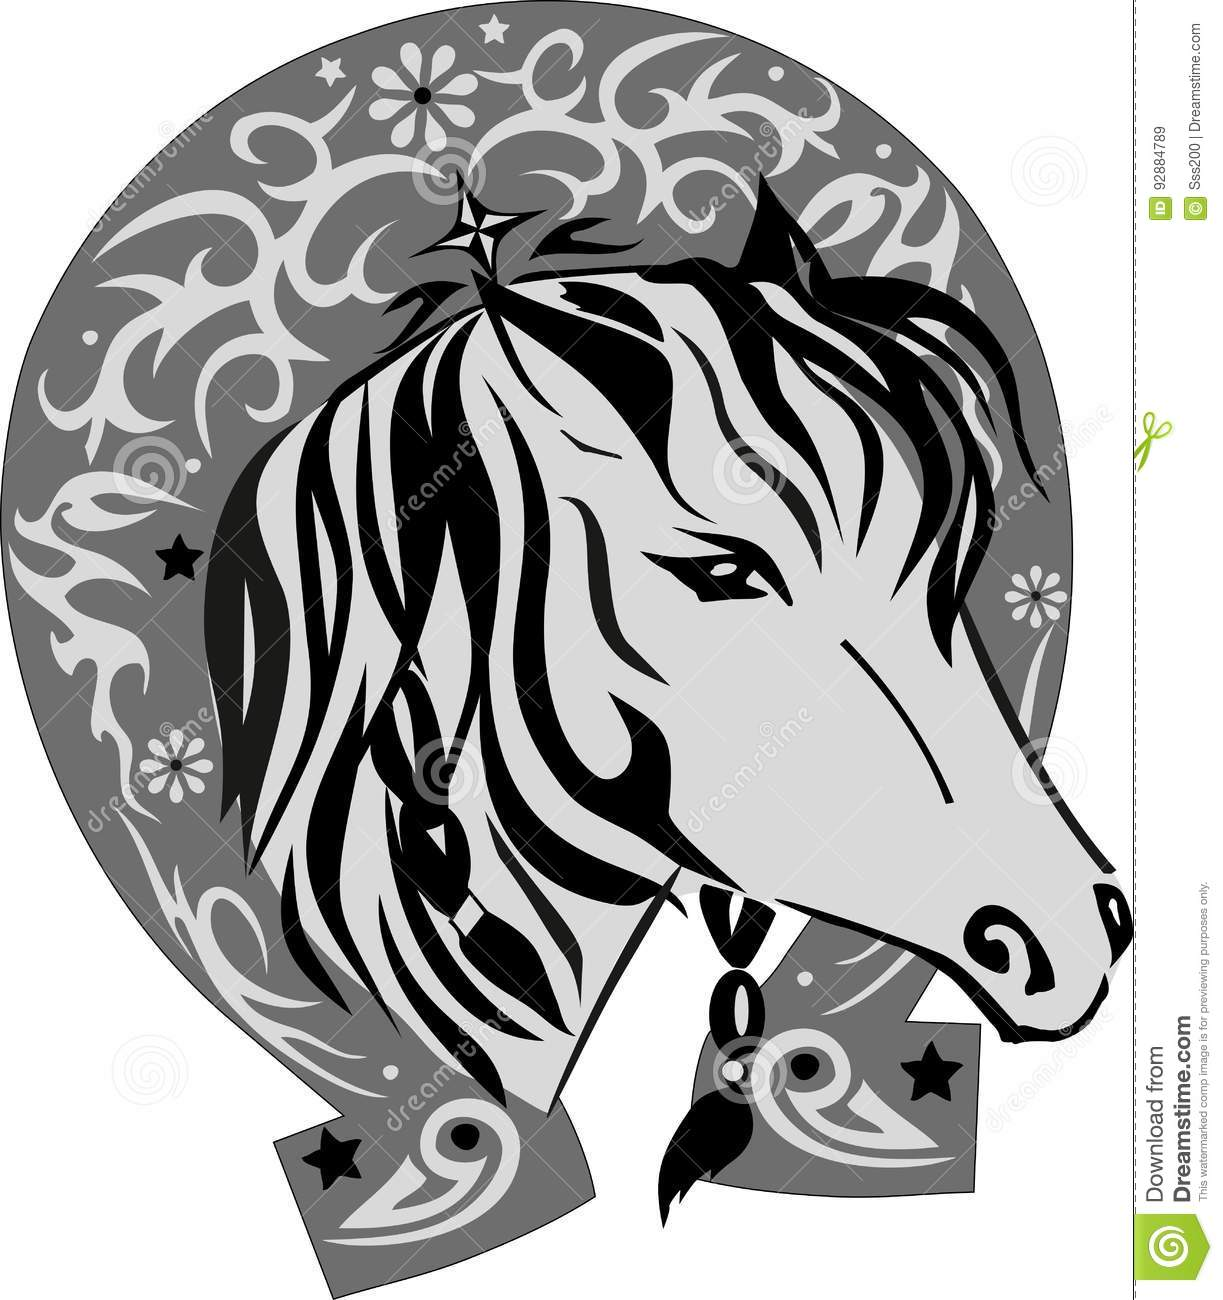 Vector silhouette of a horse with a horseshoe a pet with a good vector silhouette of a horse with a horseshoe a pet with a good luck symbol a horse illustration the head a pattern on an iron biocorpaavc Choice Image